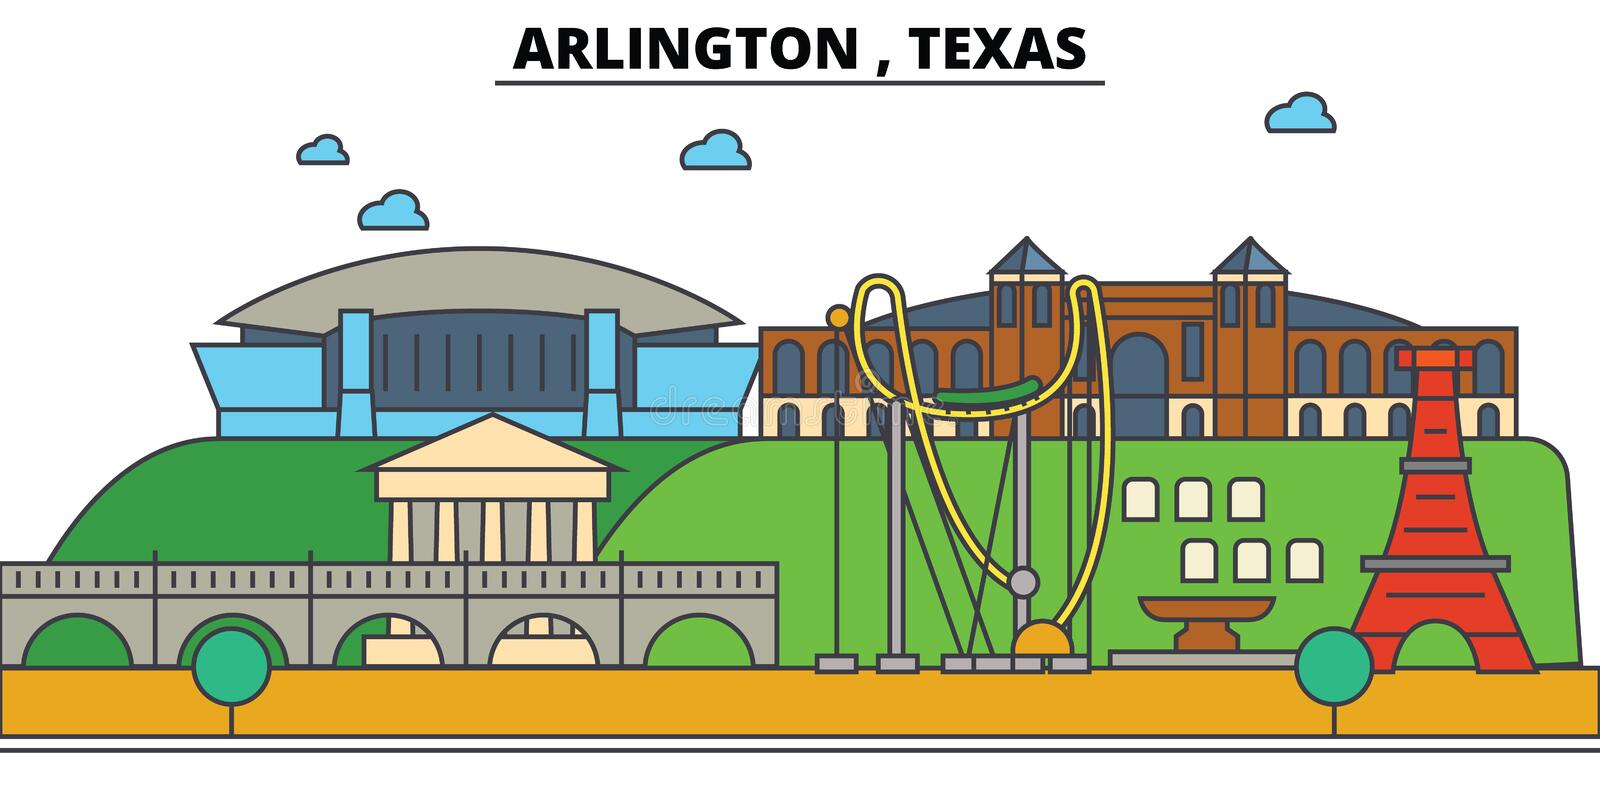 Arlington, Texas De architectuur van de stadshorizon stock illustratie